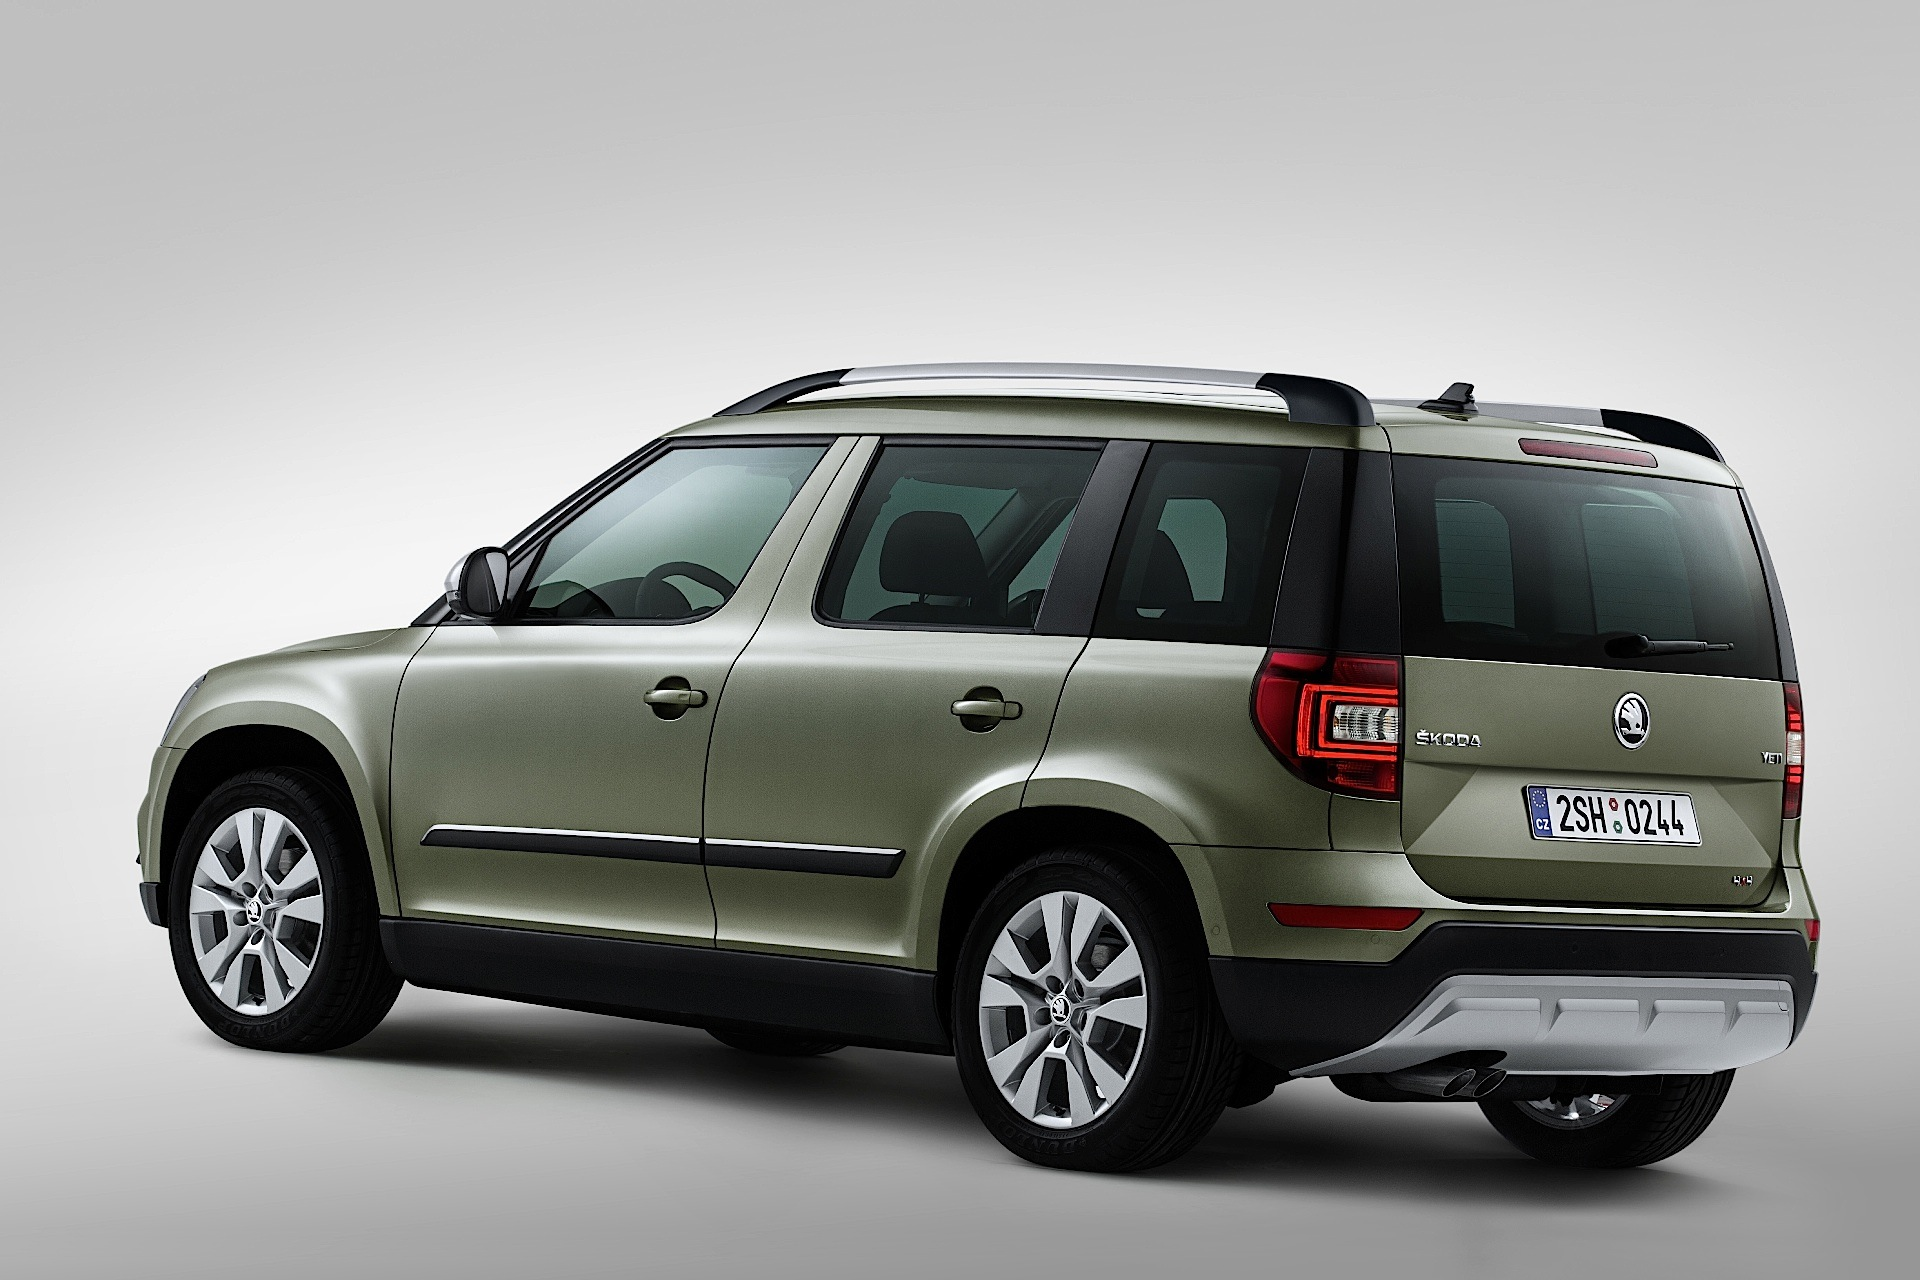 diginpix entit skoda yeti. Black Bedroom Furniture Sets. Home Design Ideas